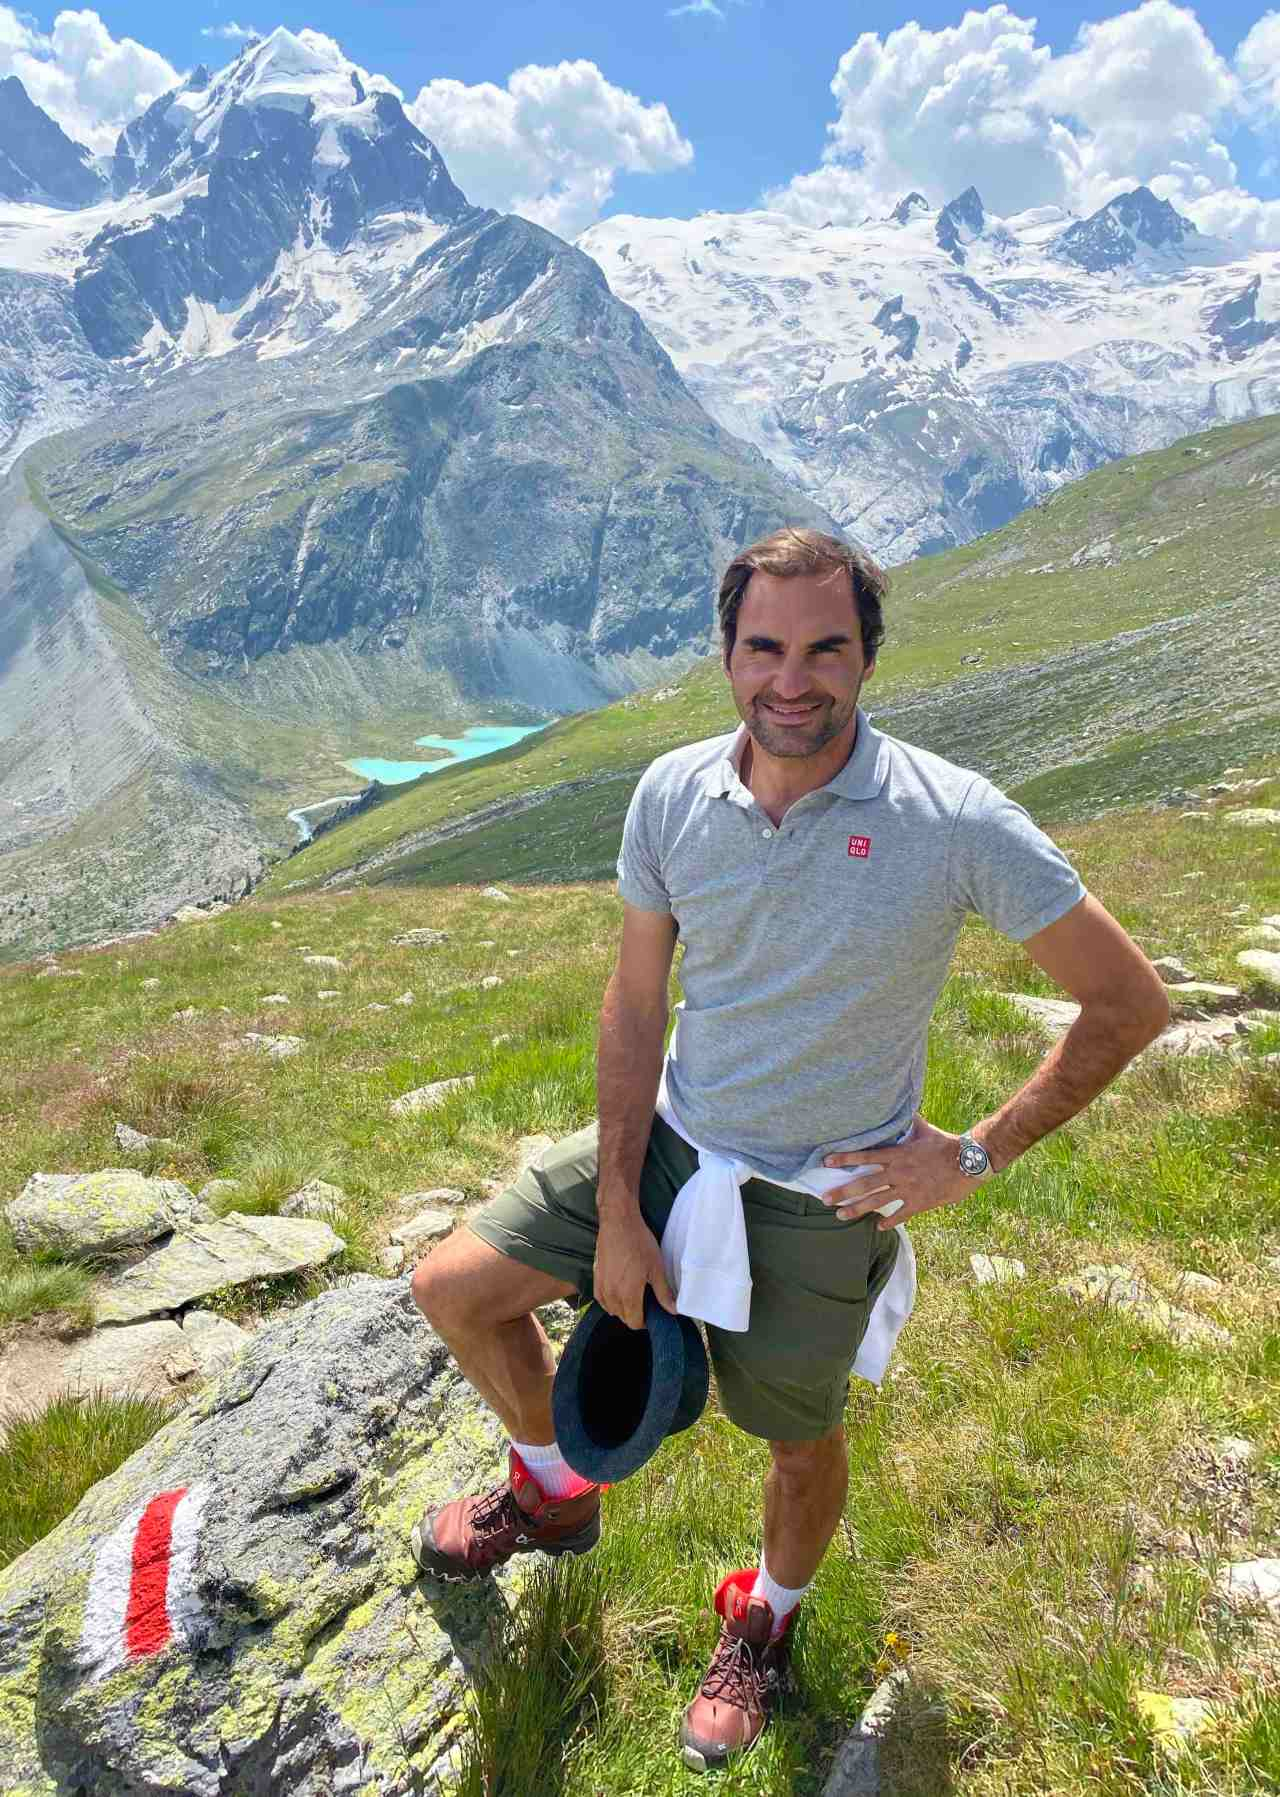 Tennis ace Roger Federer is the new face of Swisstourism